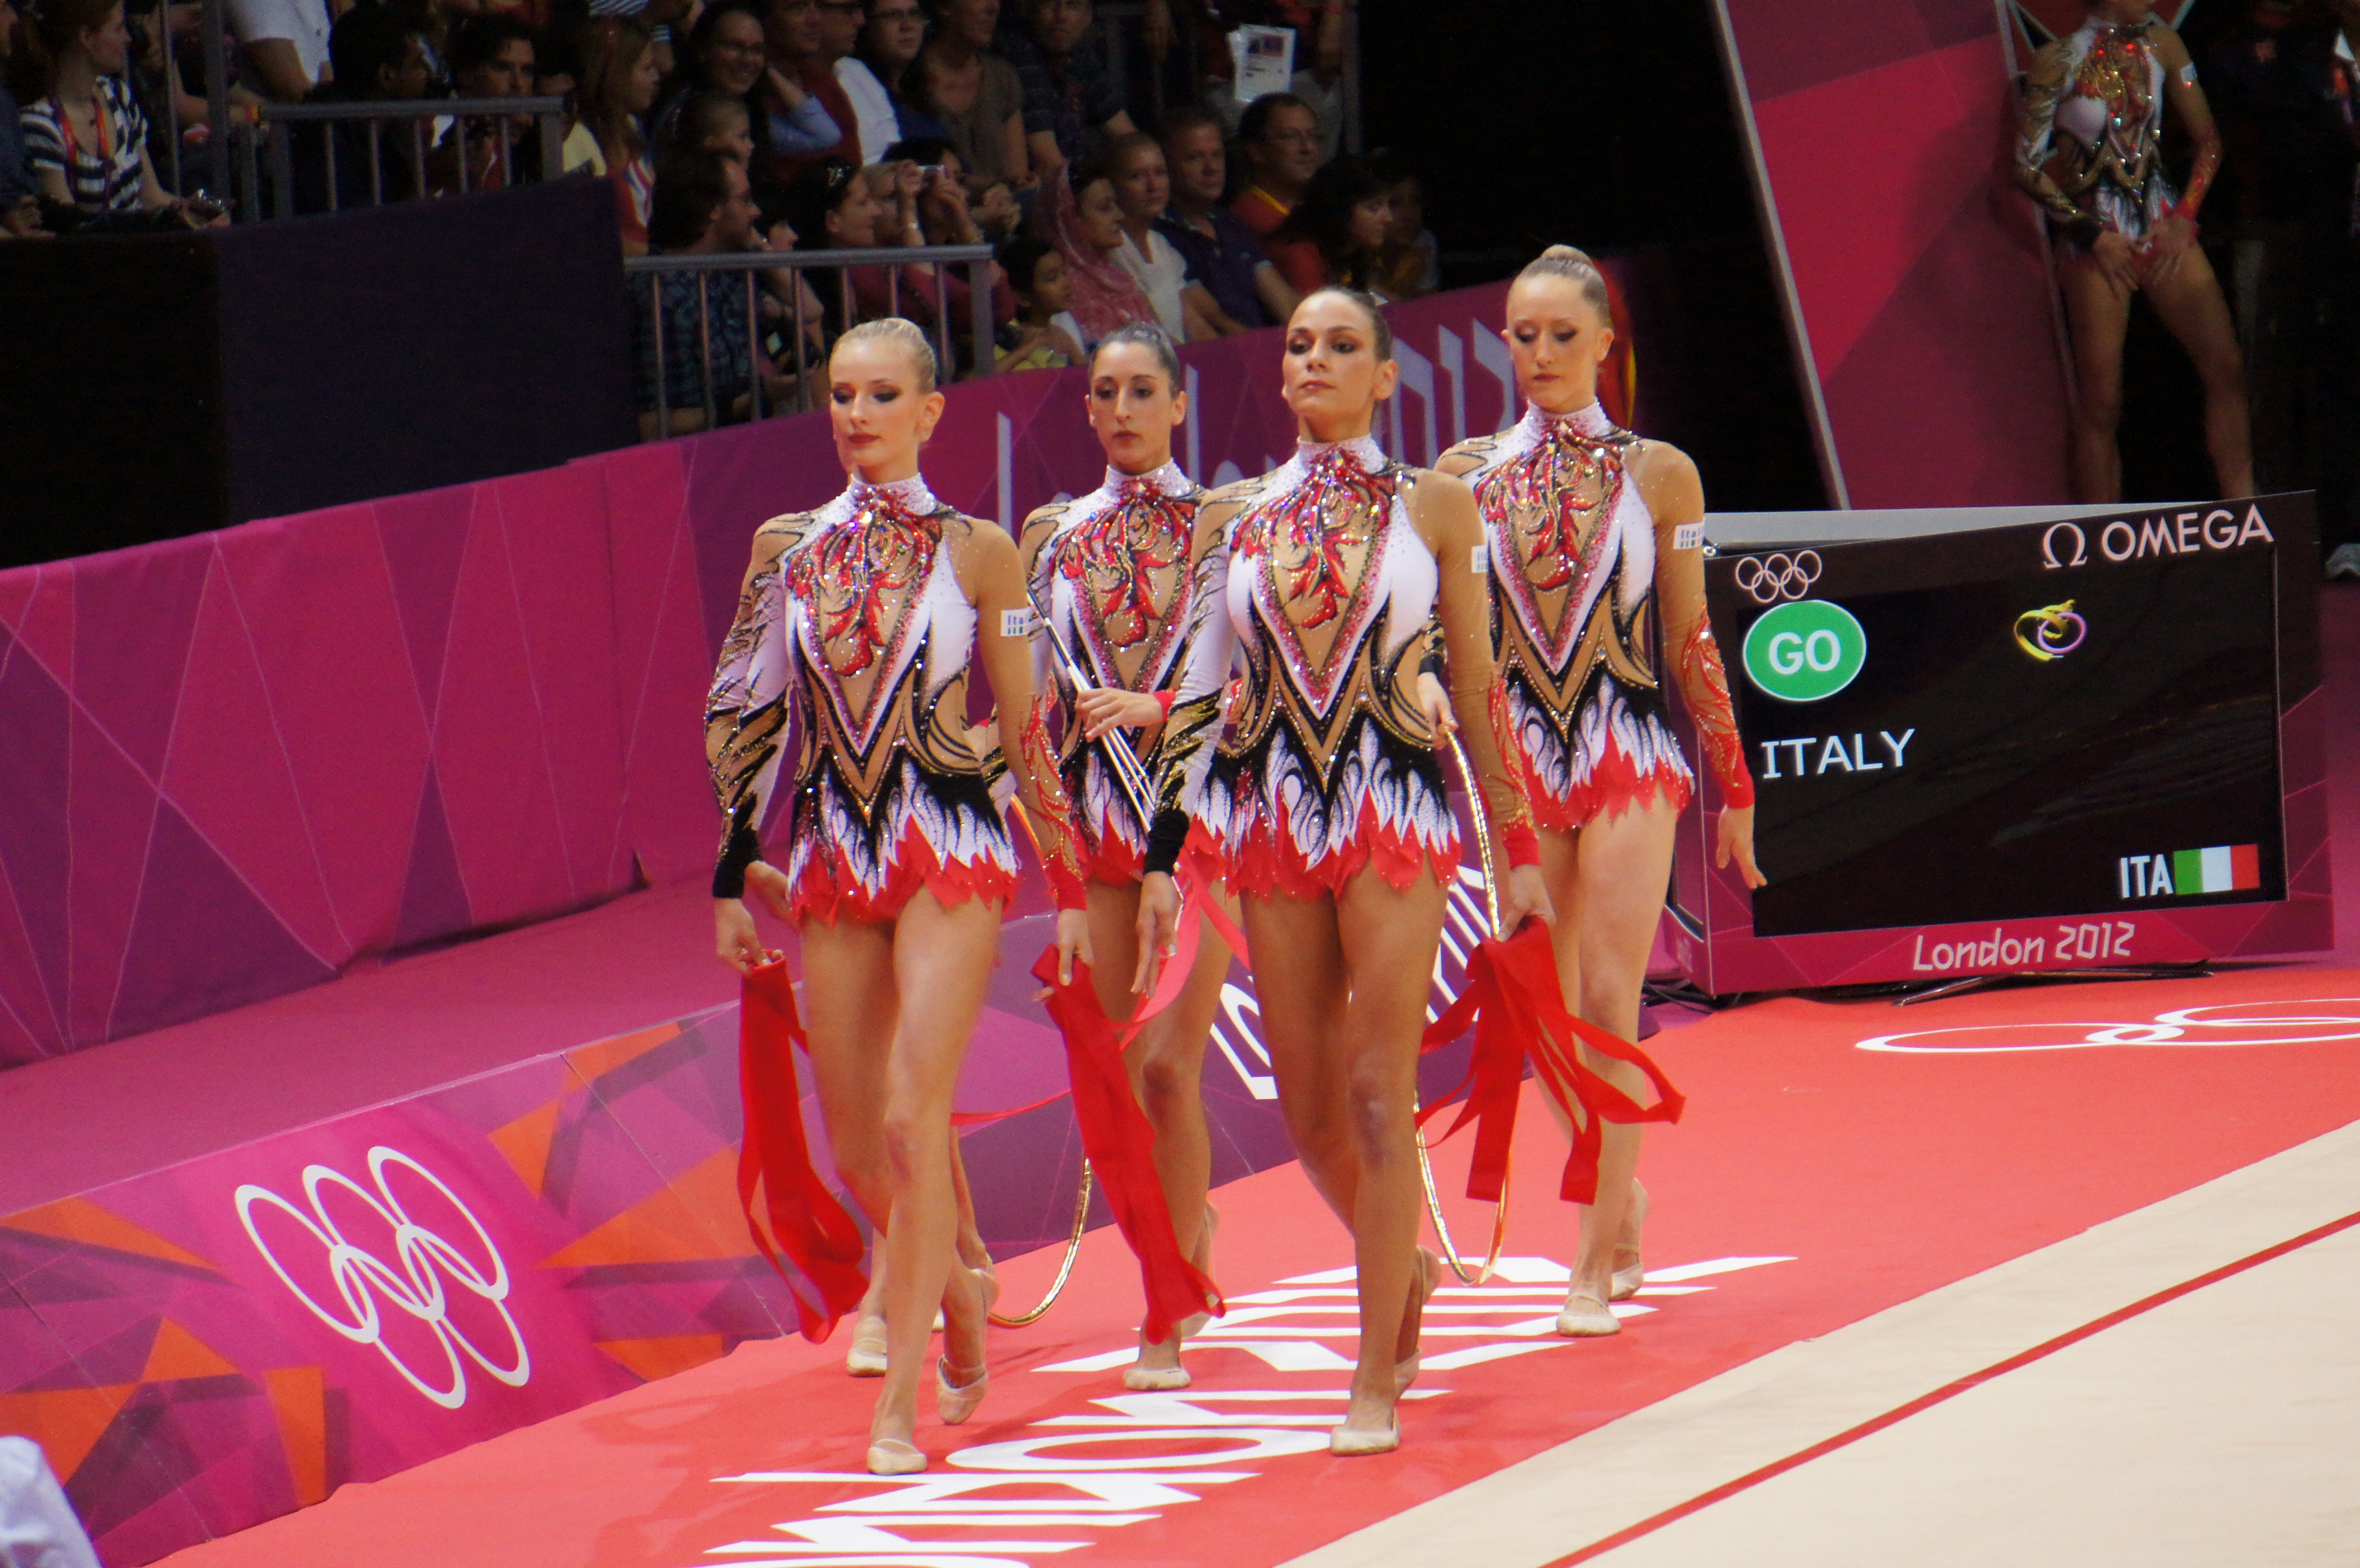 File:London 2012 Rhythmic Gymnastics - Italy.jpg - Wikimedia Commons